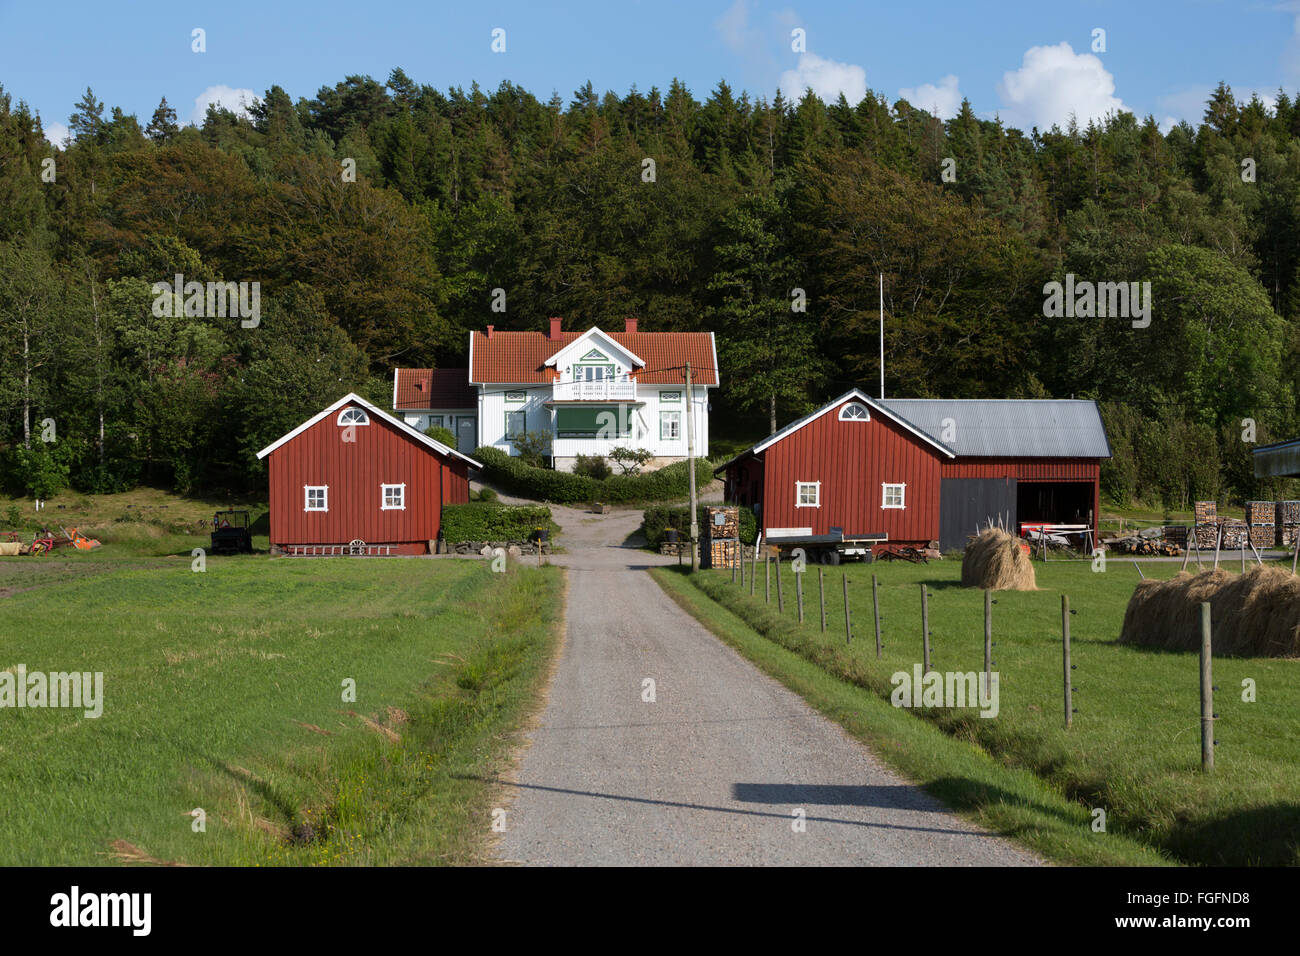 Typical Swedish farm, near Kode, Bohuslän, southwest Sweden, Sweden, Scandinavia, Europe Stock Photo